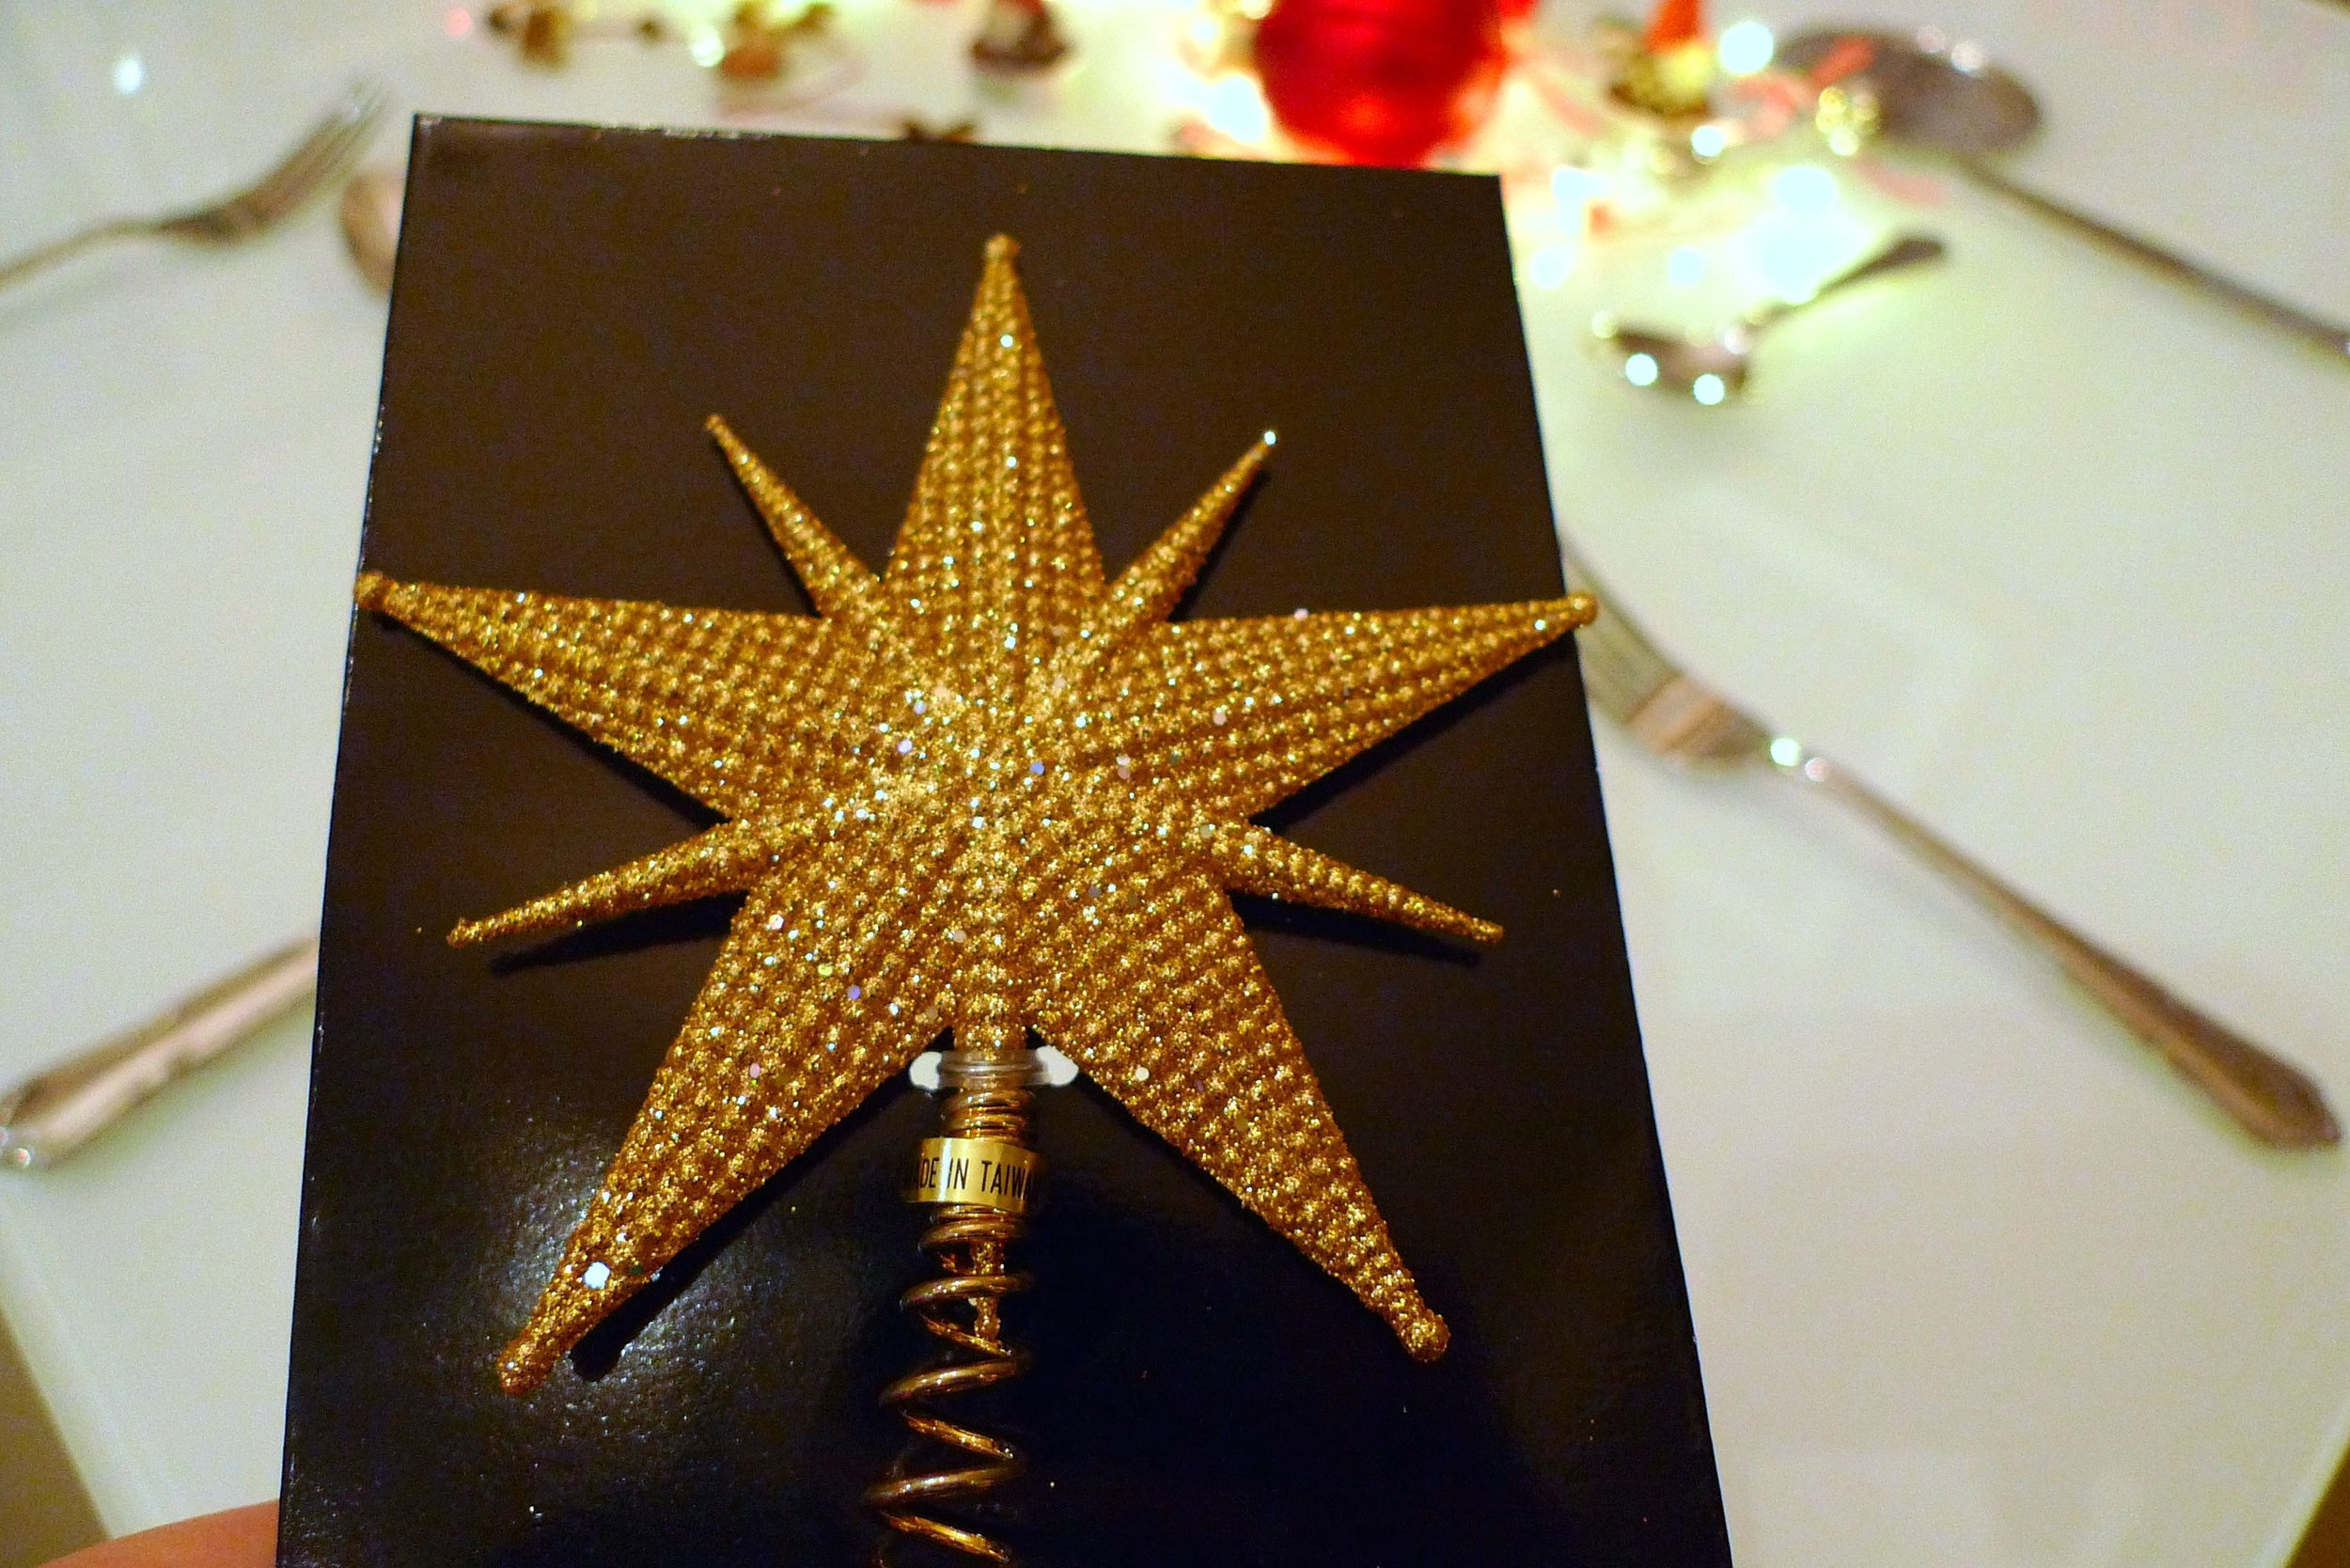 A gold star for the top of my christmas tree from TK Maxx